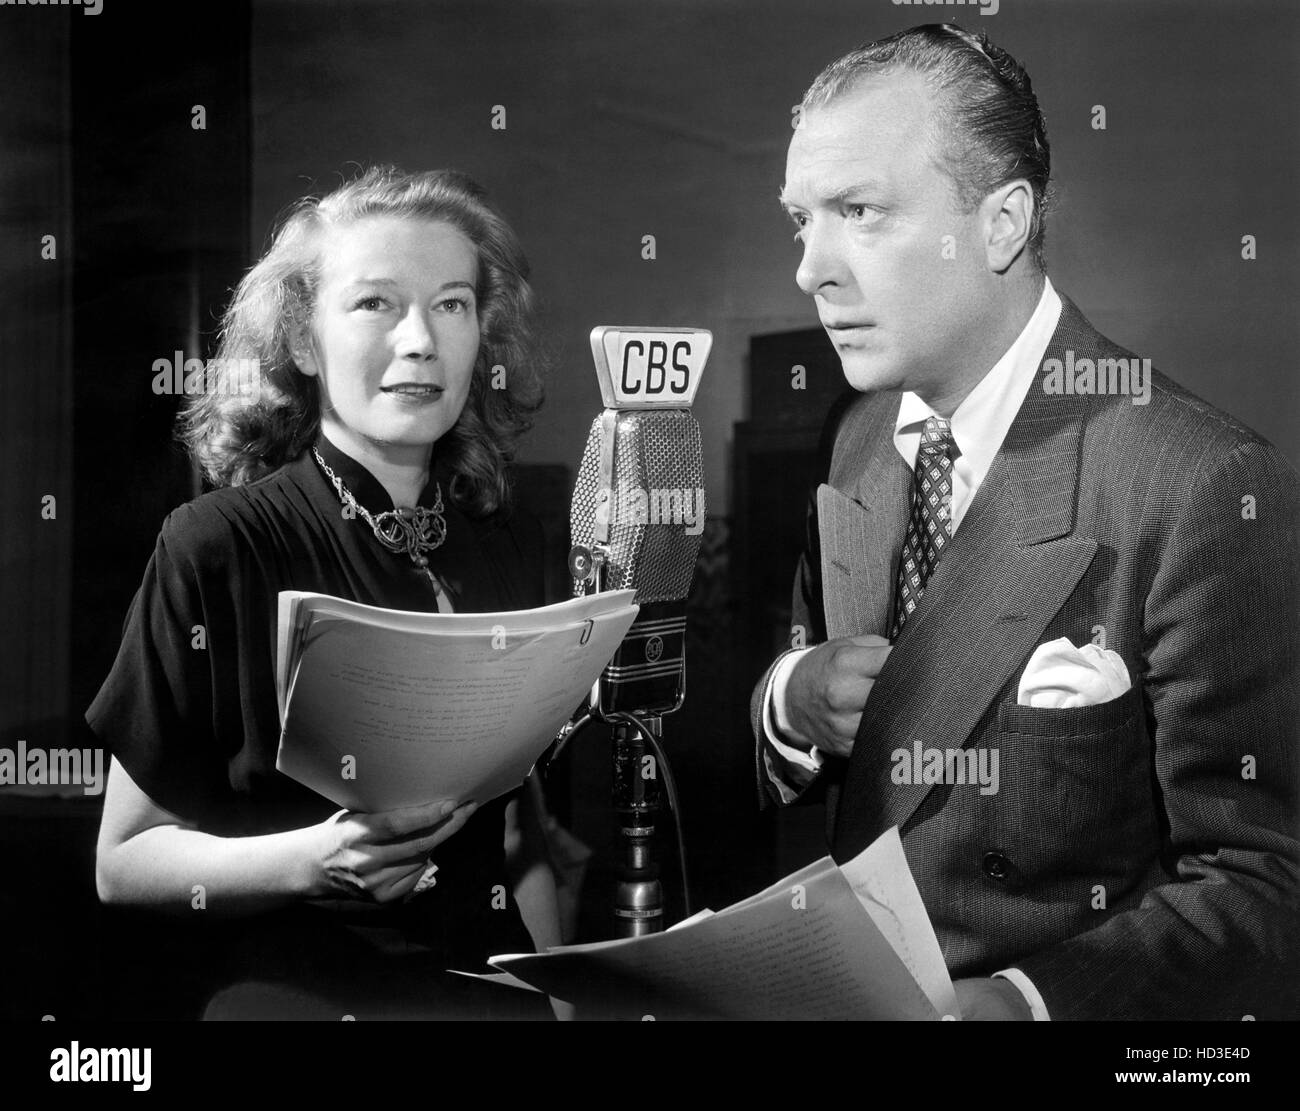 THE GUIDING LIGHT, (from left): Lesley Woods, Staats Cotsworth, (C.B.S. Radio, 1949), 1937-56 Stock Photo